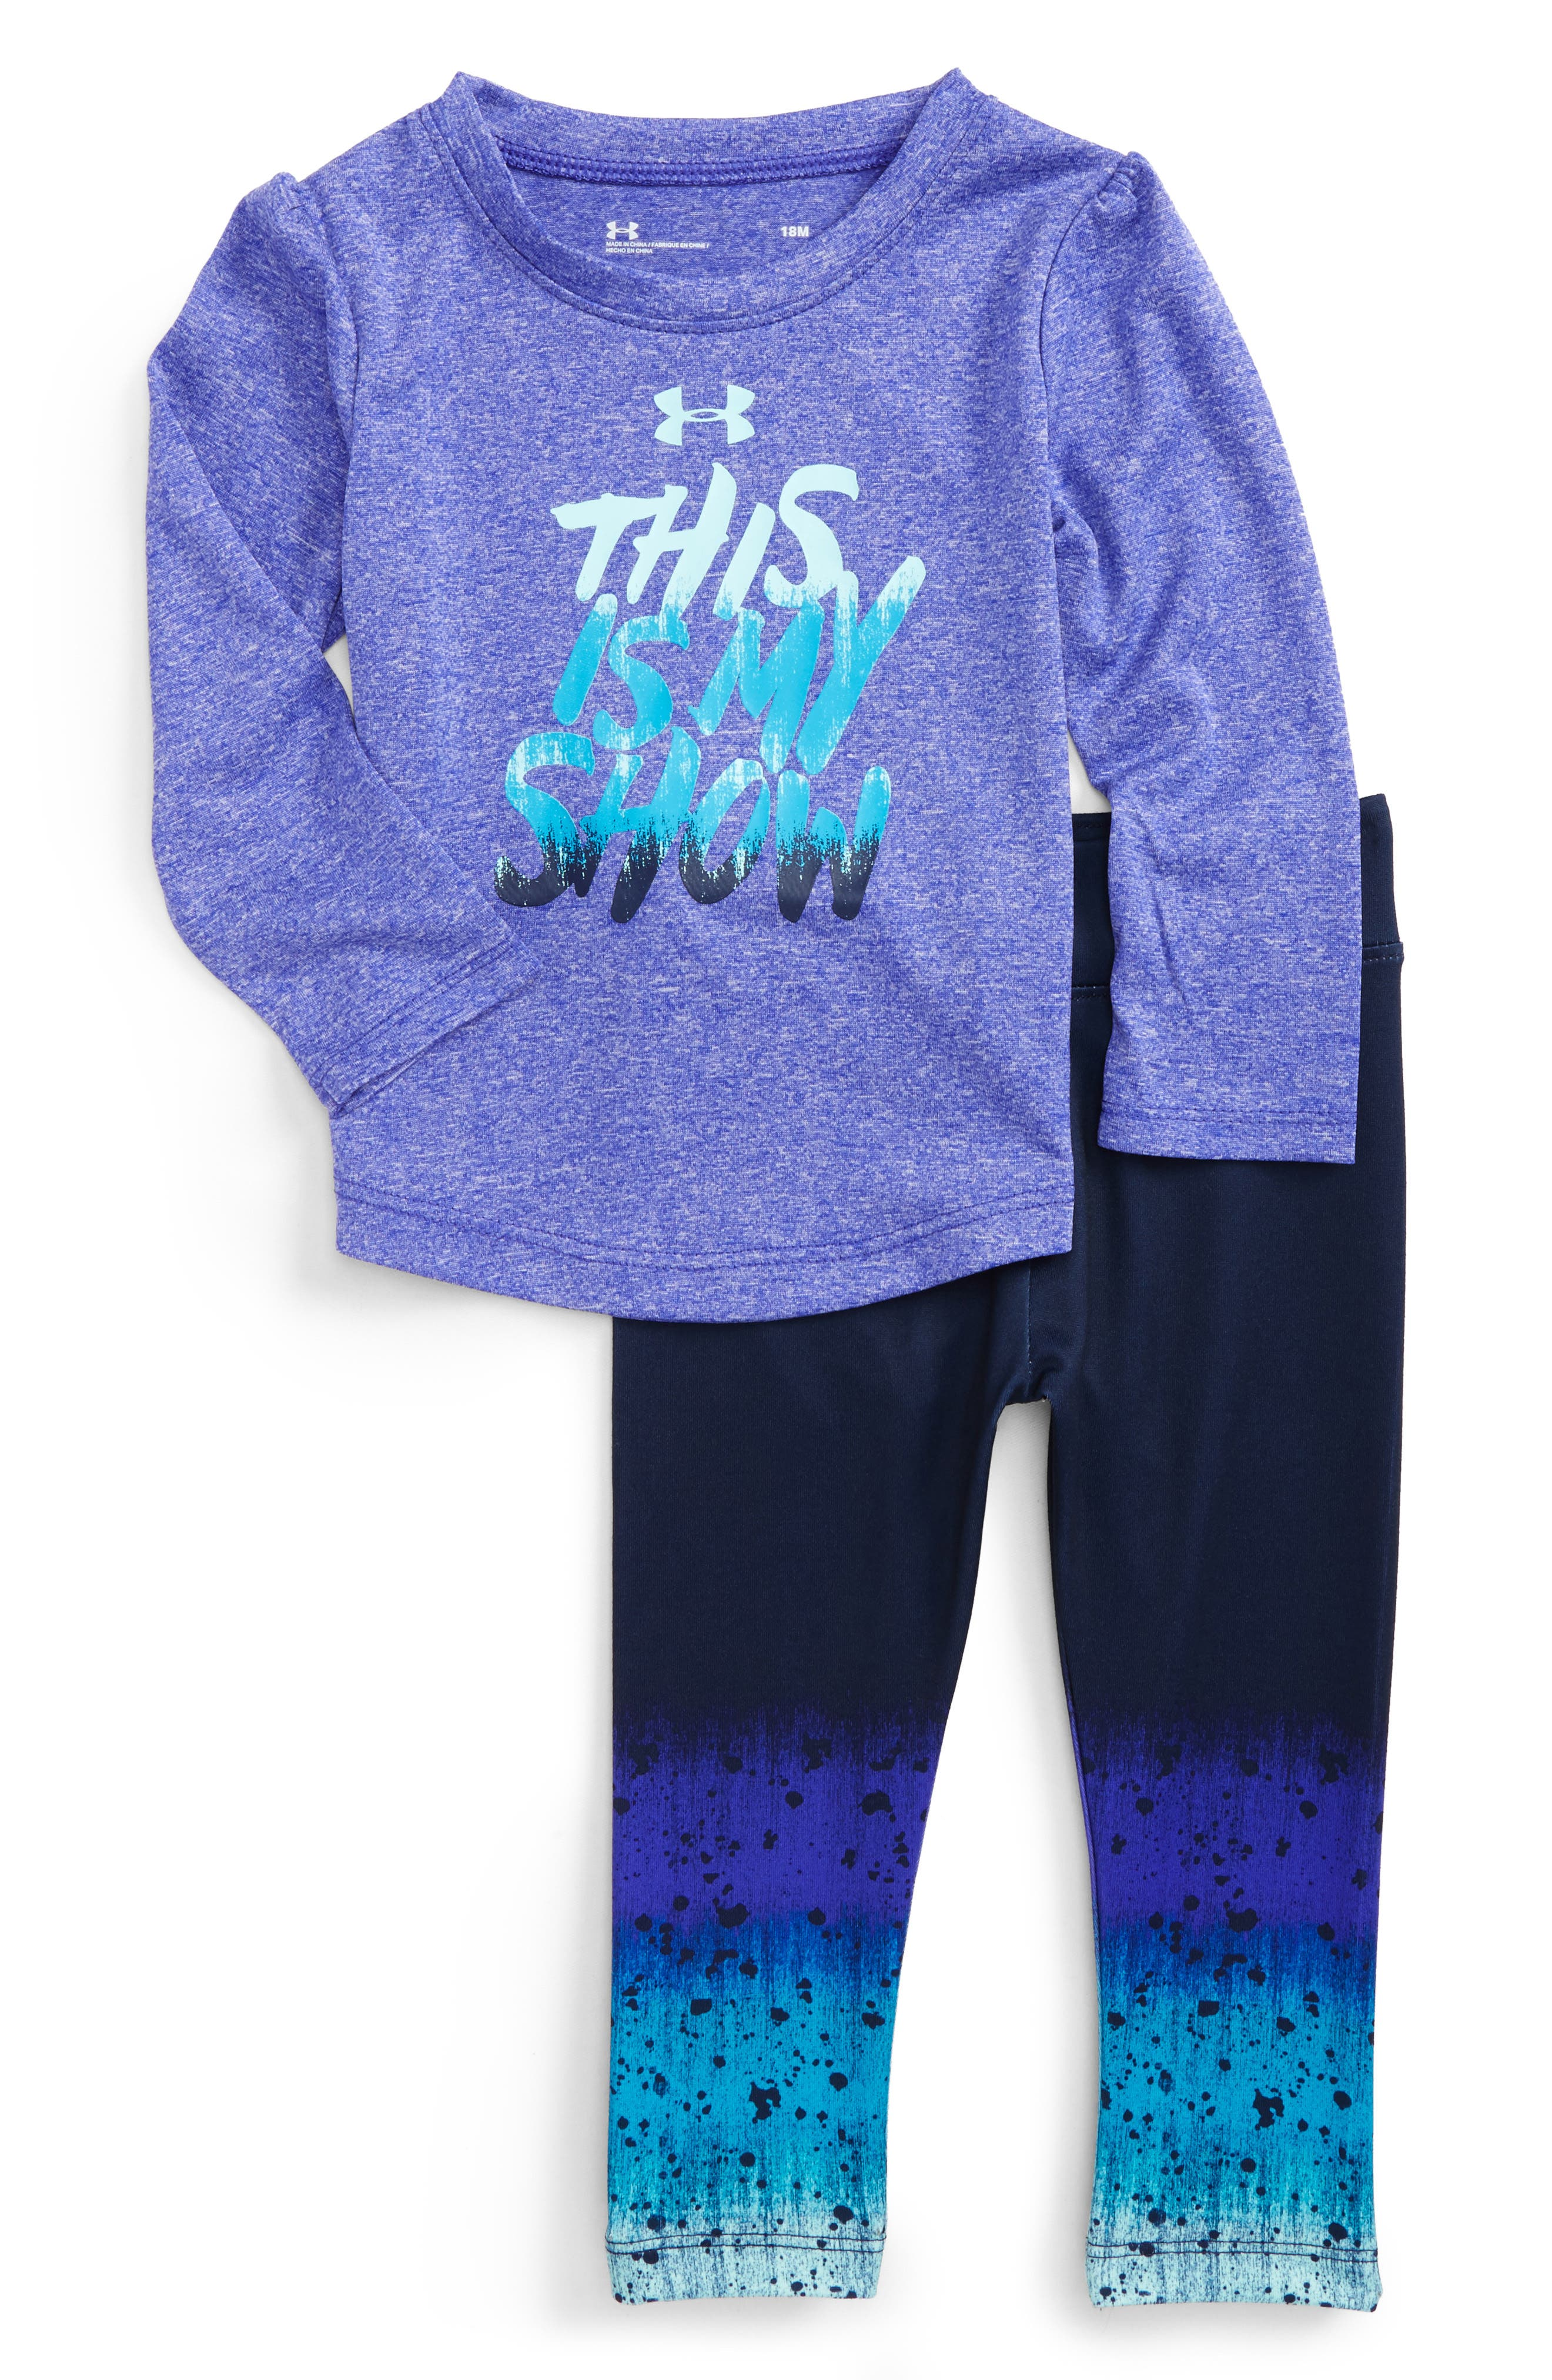 Under Armour This Is My Show Graphic Tee & Leggings Set (Baby Girls)